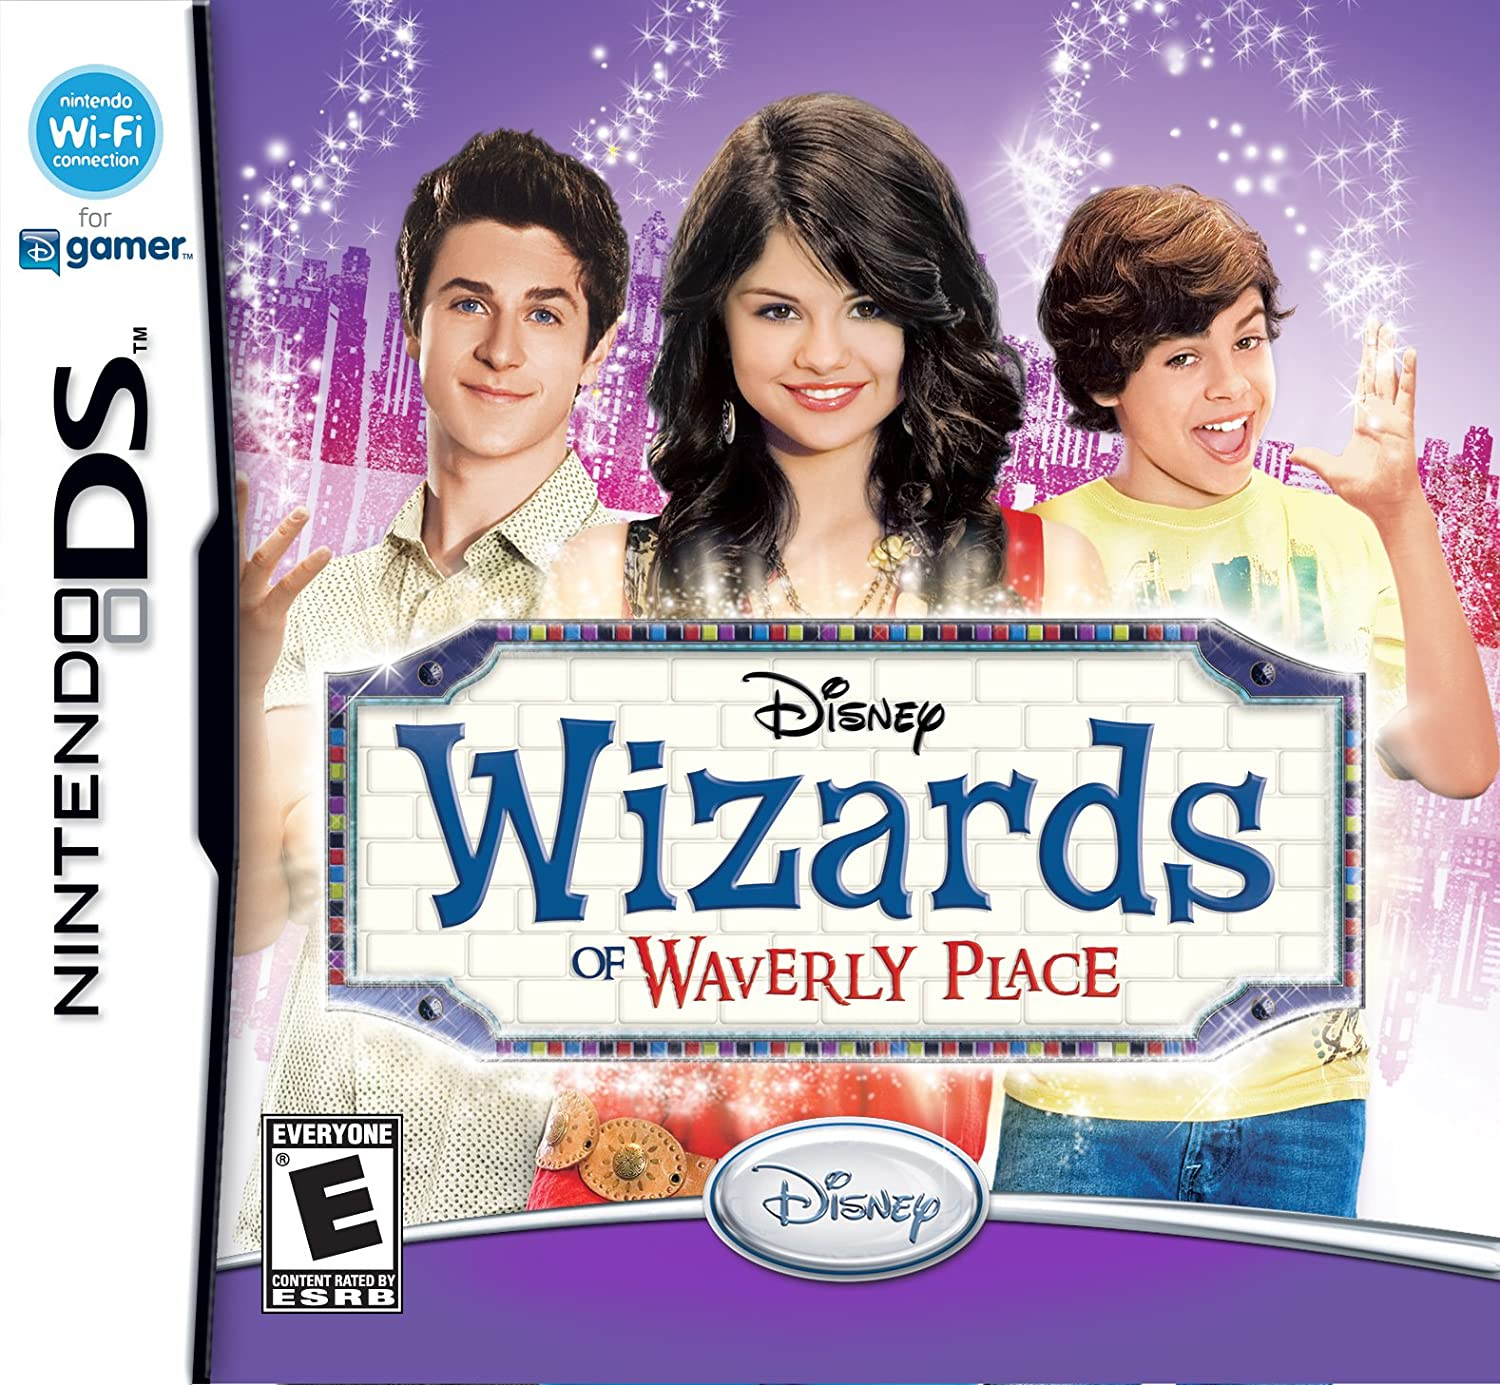 Amazoncom Wizards of Waverly Place Nintendo DS Video Games